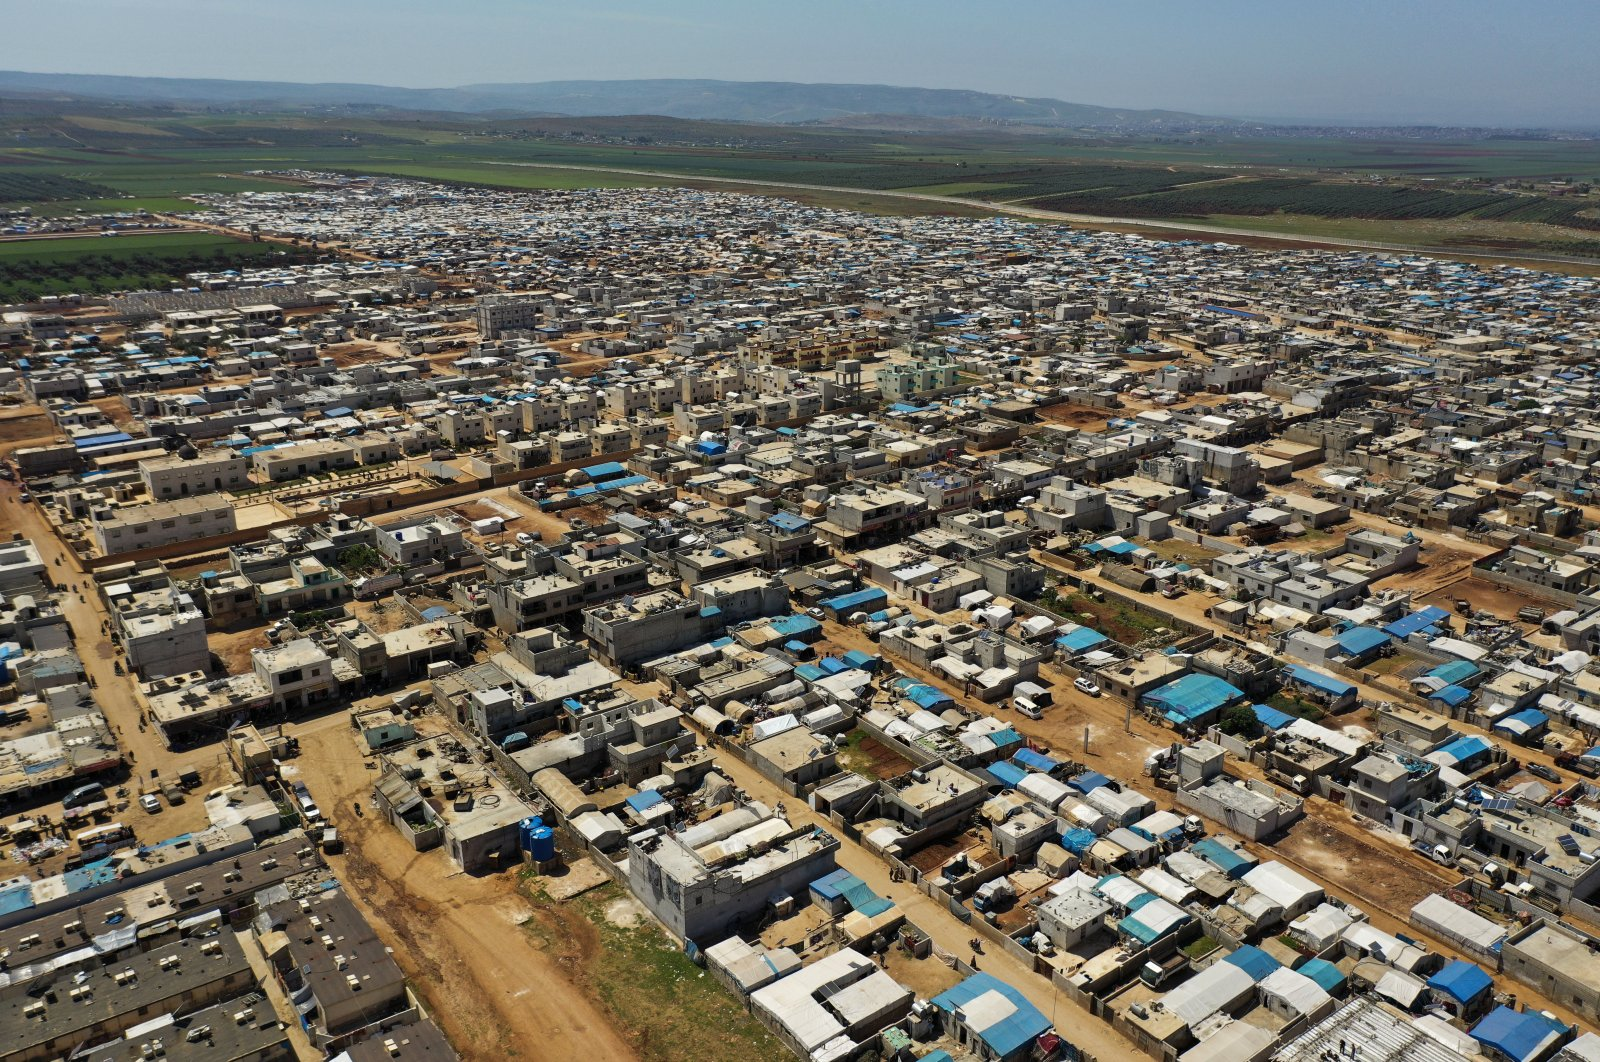 A large refugee camp on the Syrian side of the border with Turkey, near the town of Atma, in Idlib province, Syria, April 19, 2020. (AP Photo)